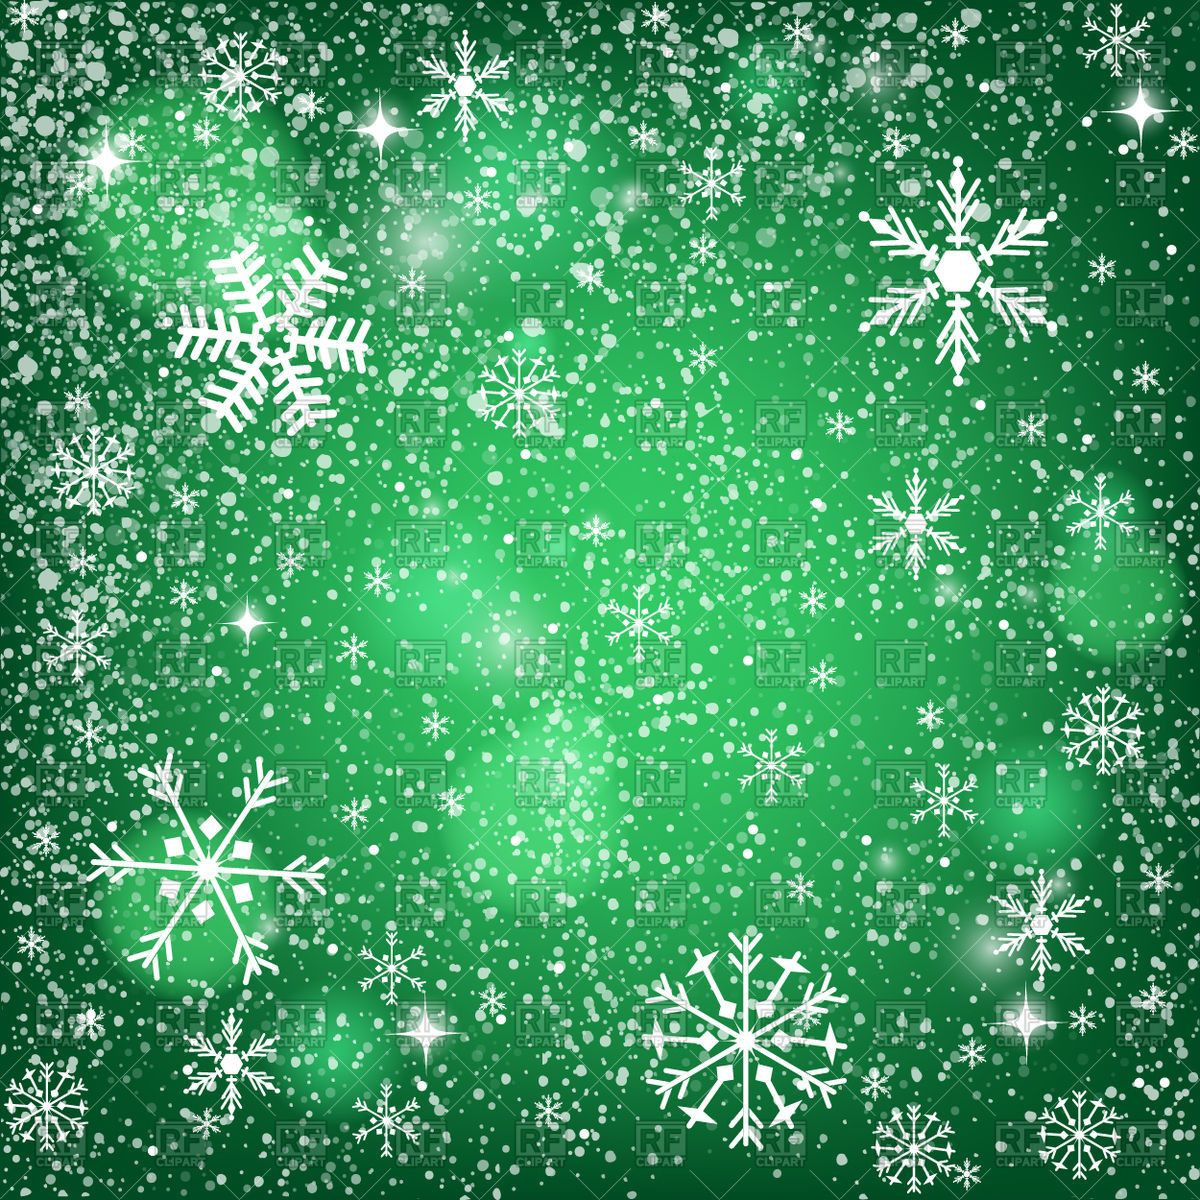 Vector image of Abstract green Christmas background snowy